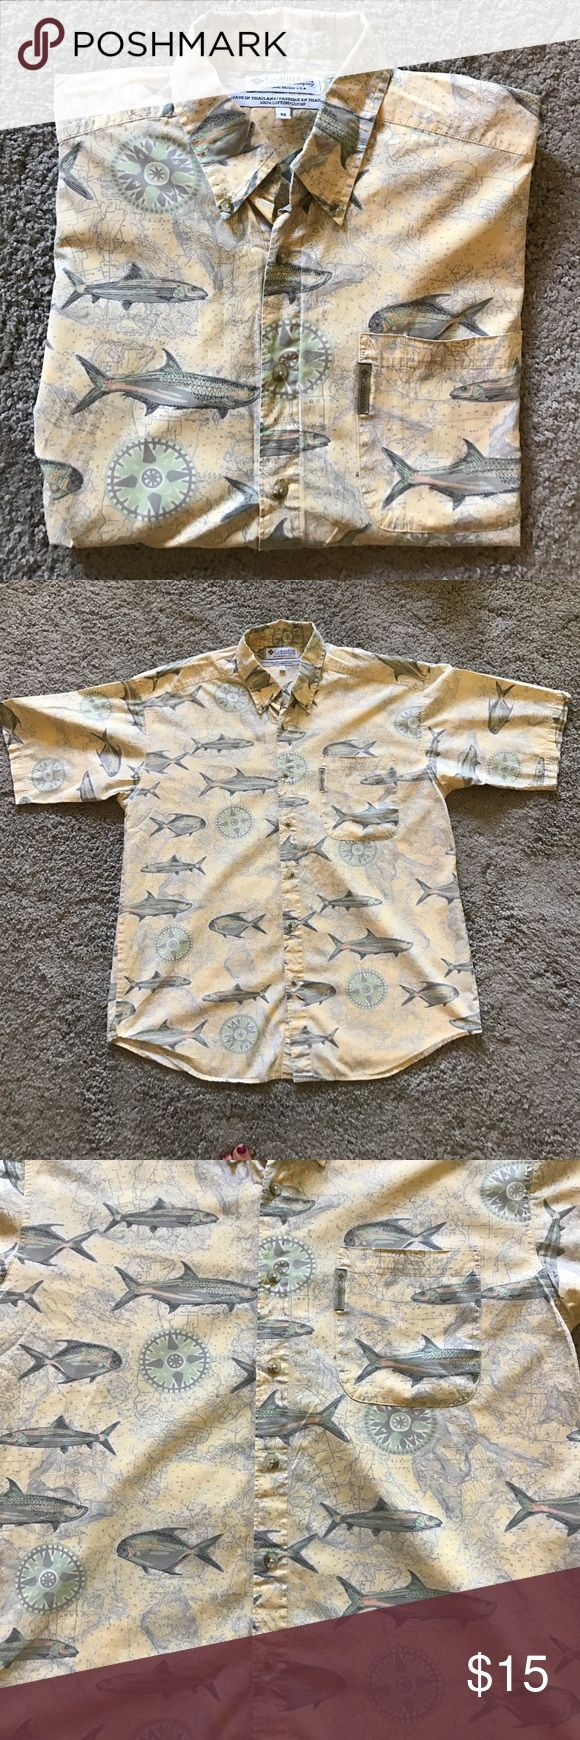 Vintage Men's Columbia Fishing Shirt Awesome pattern. Like new condition. 100% cotton! Columbia Shirts Casual Button Down Shirts